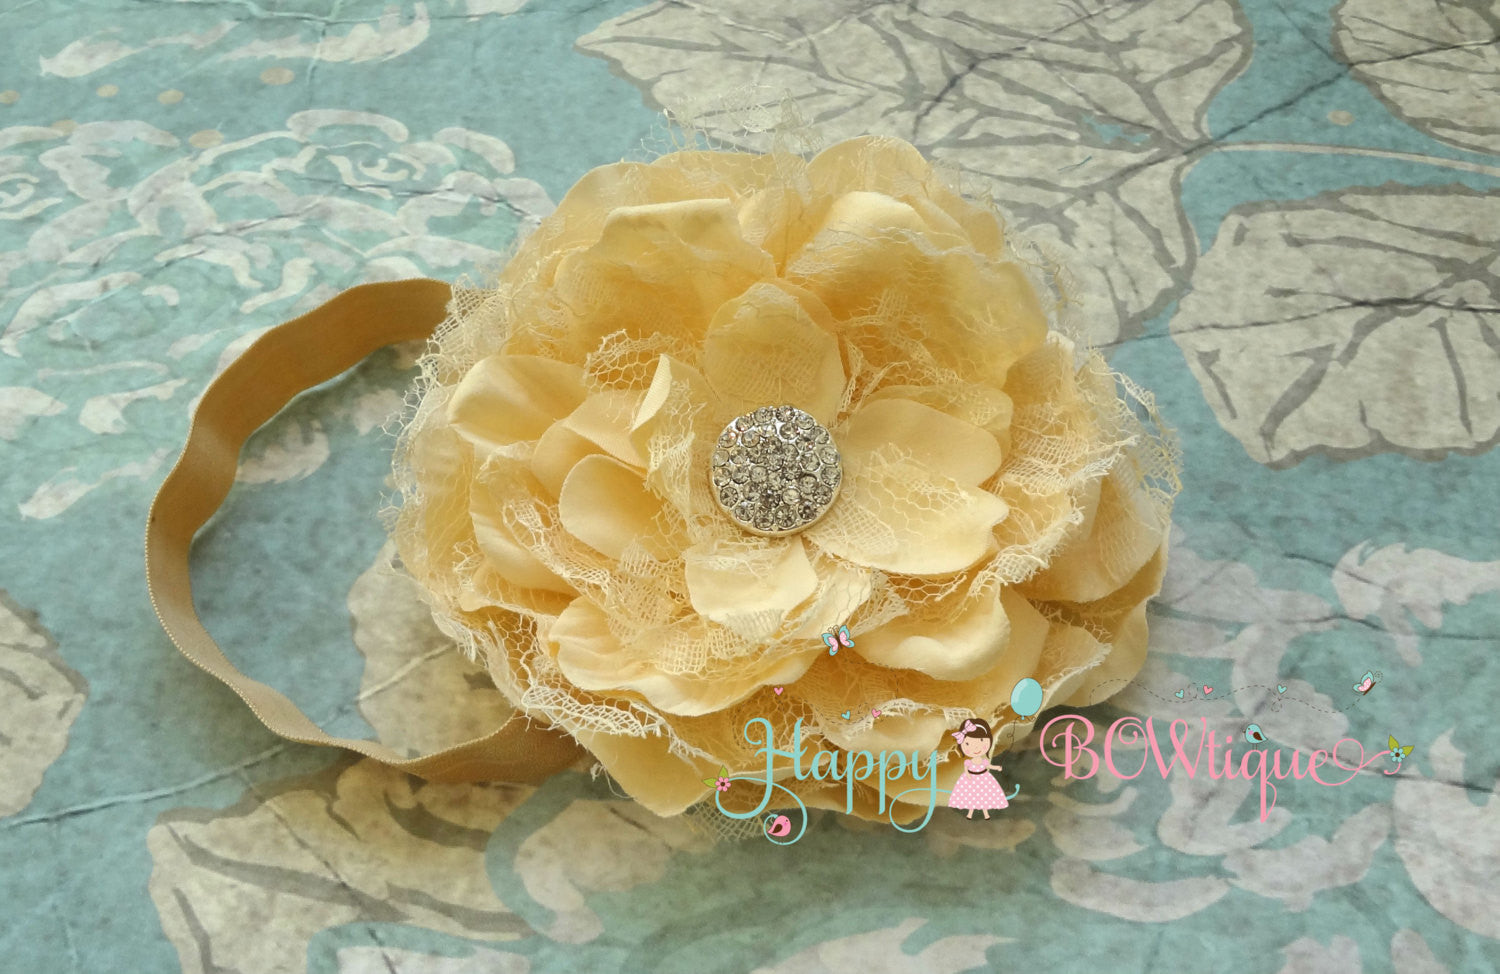 Lace Peony Champagne Headband - Happy BOWtique - children's clothing, Baby Girl clothing